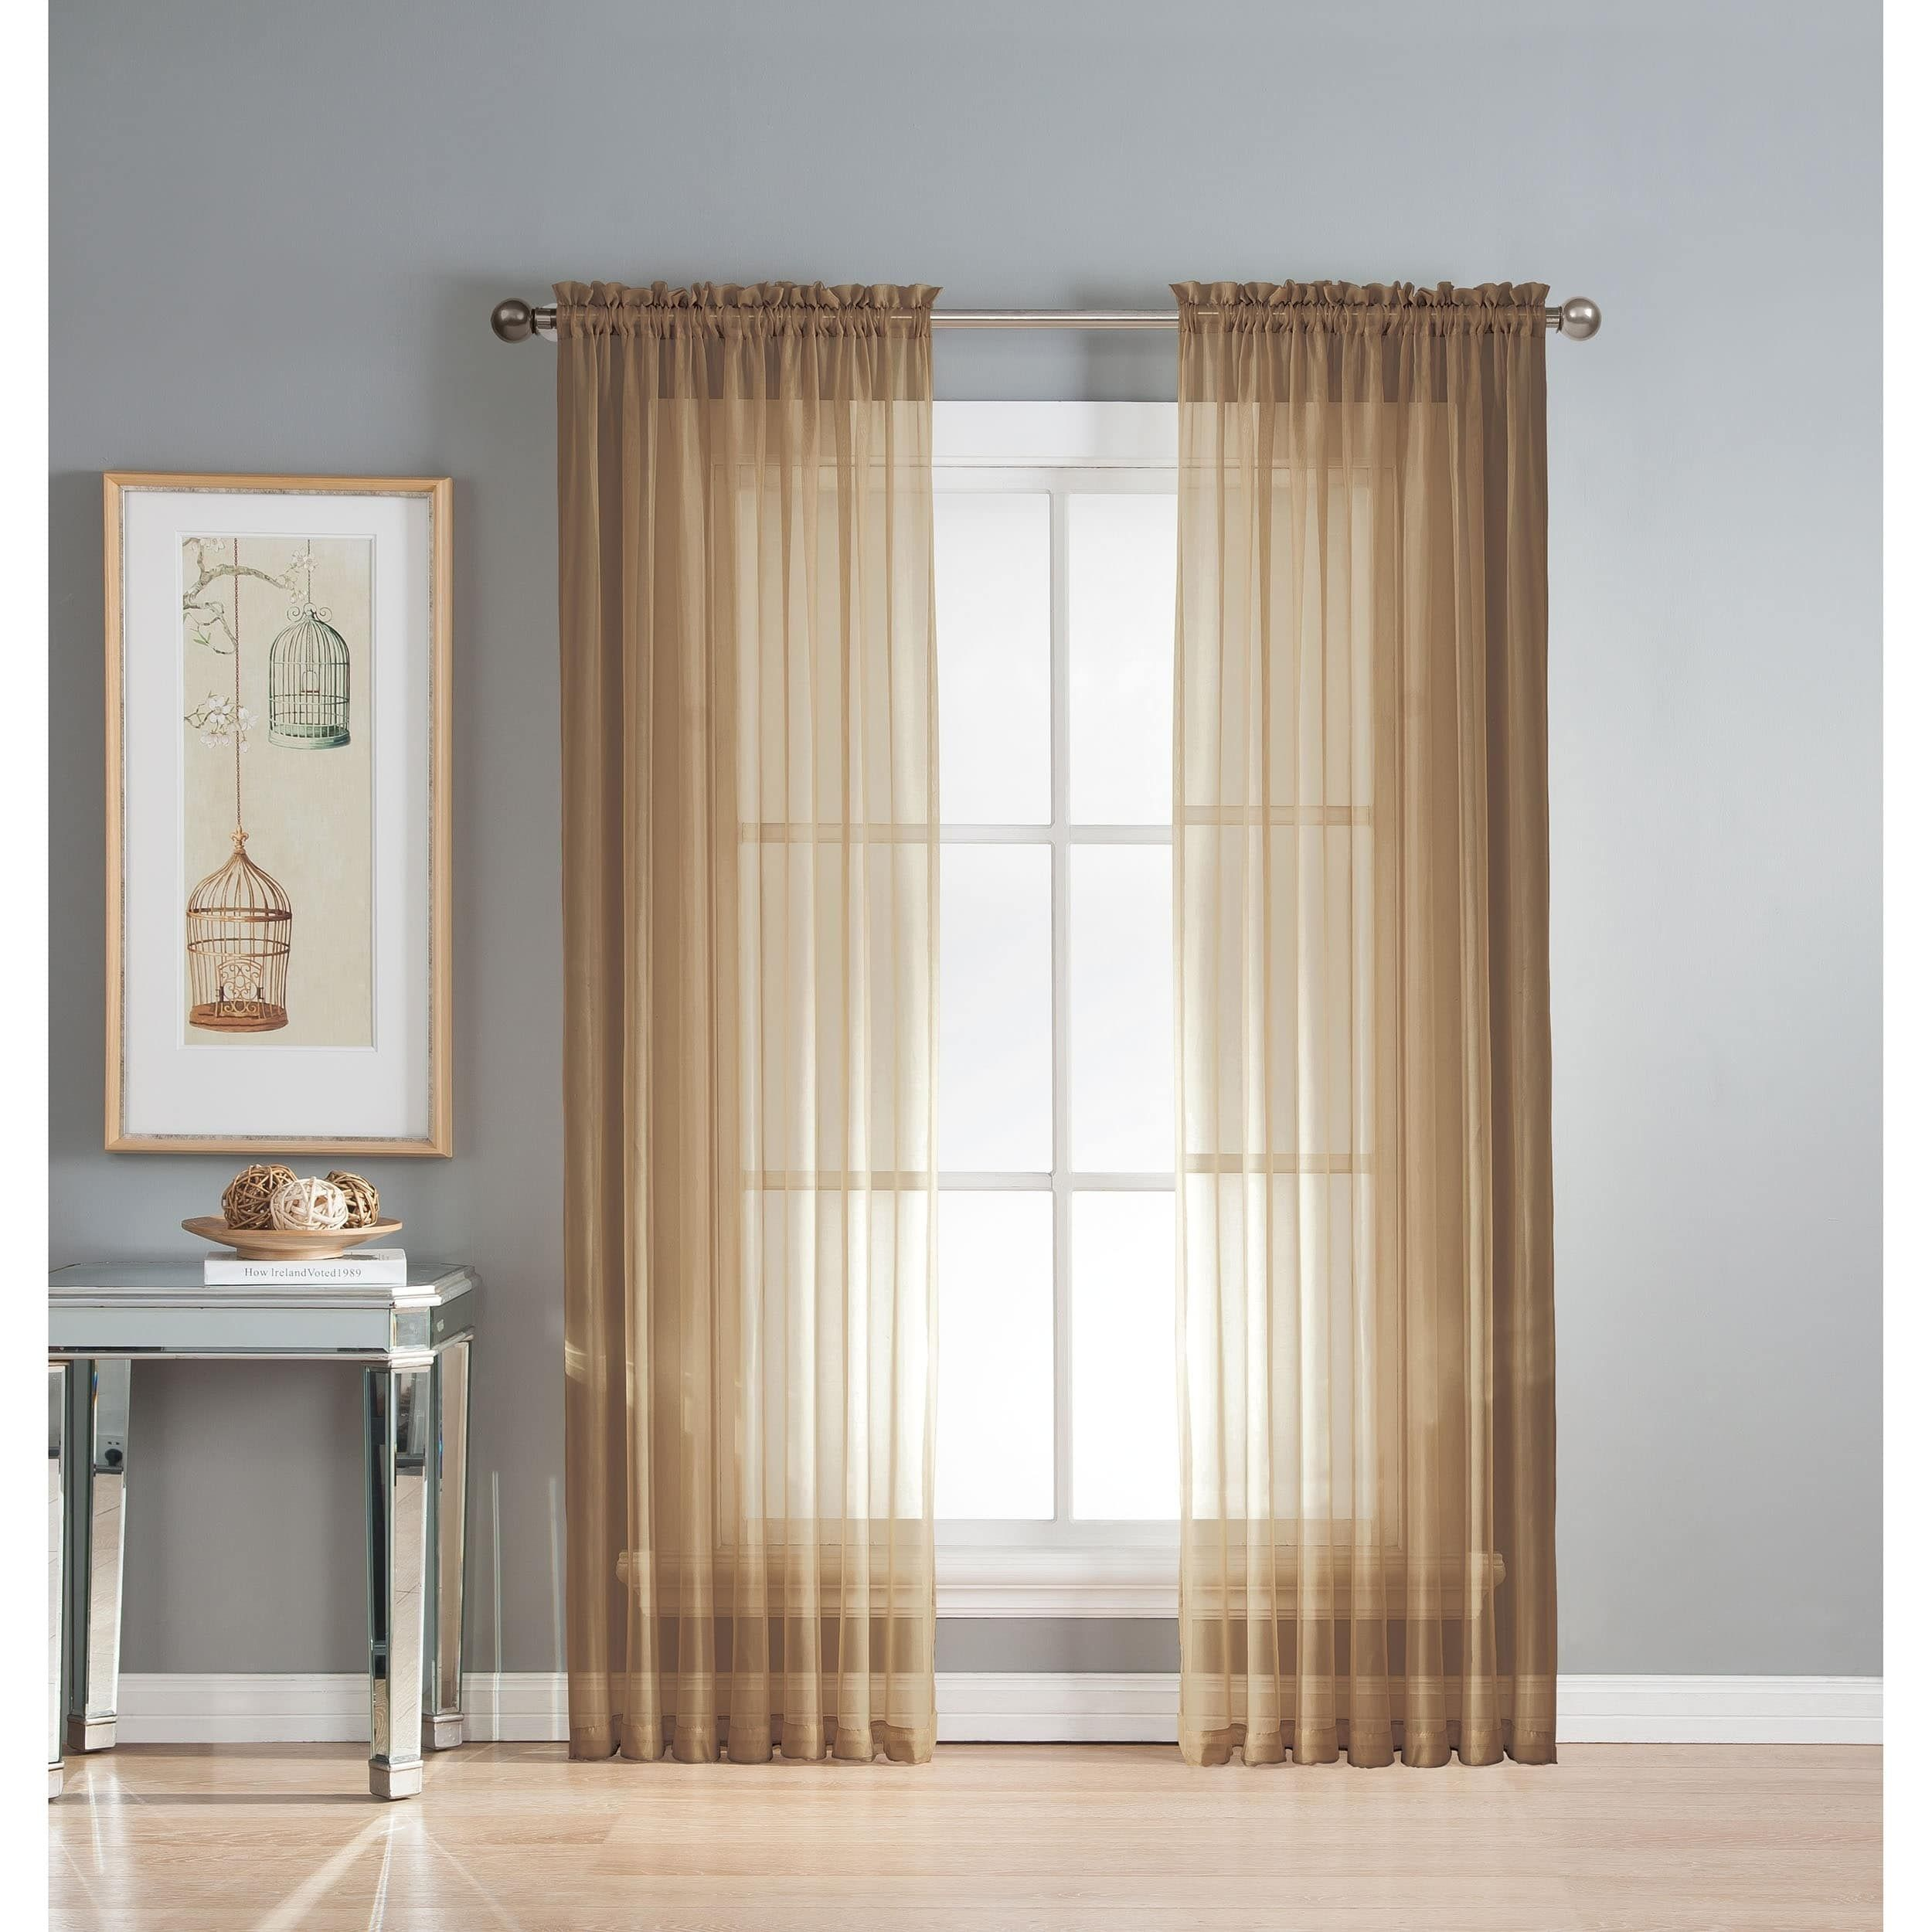 free curtains inch elements window sheer product voile diamond garden orders home scarf over shipping curtain overstock on